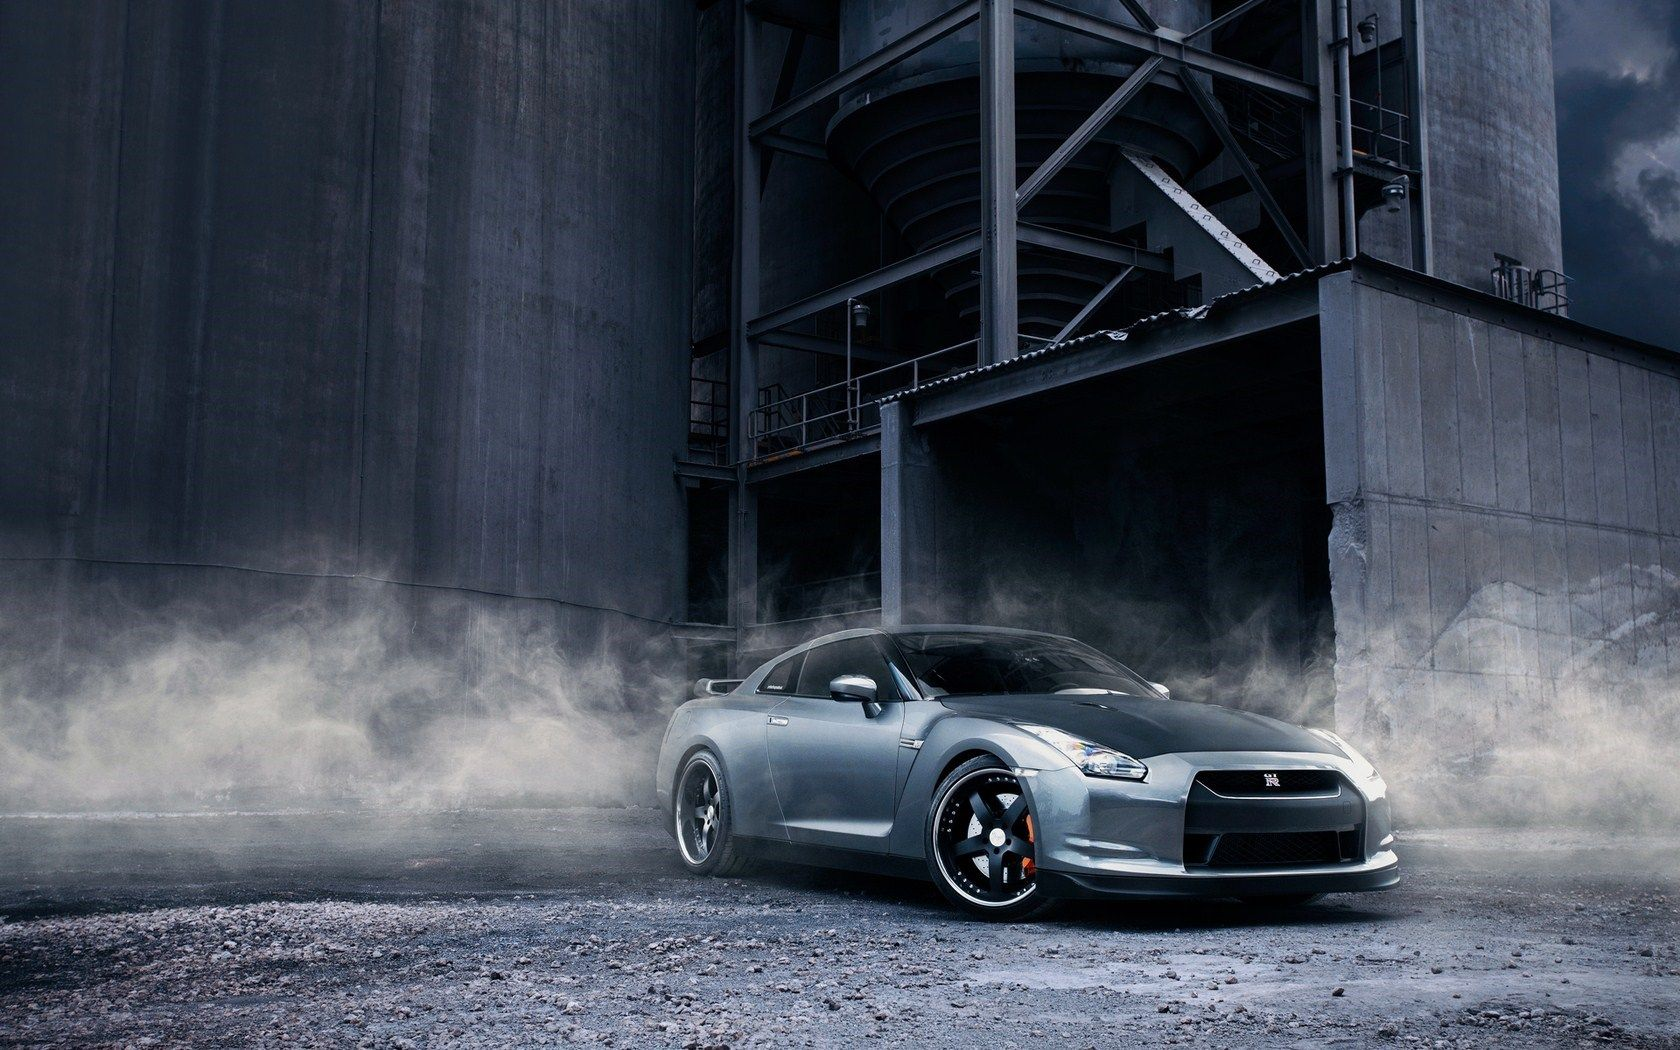 Nissan Skyline Gtr R Car White Wallpaper X